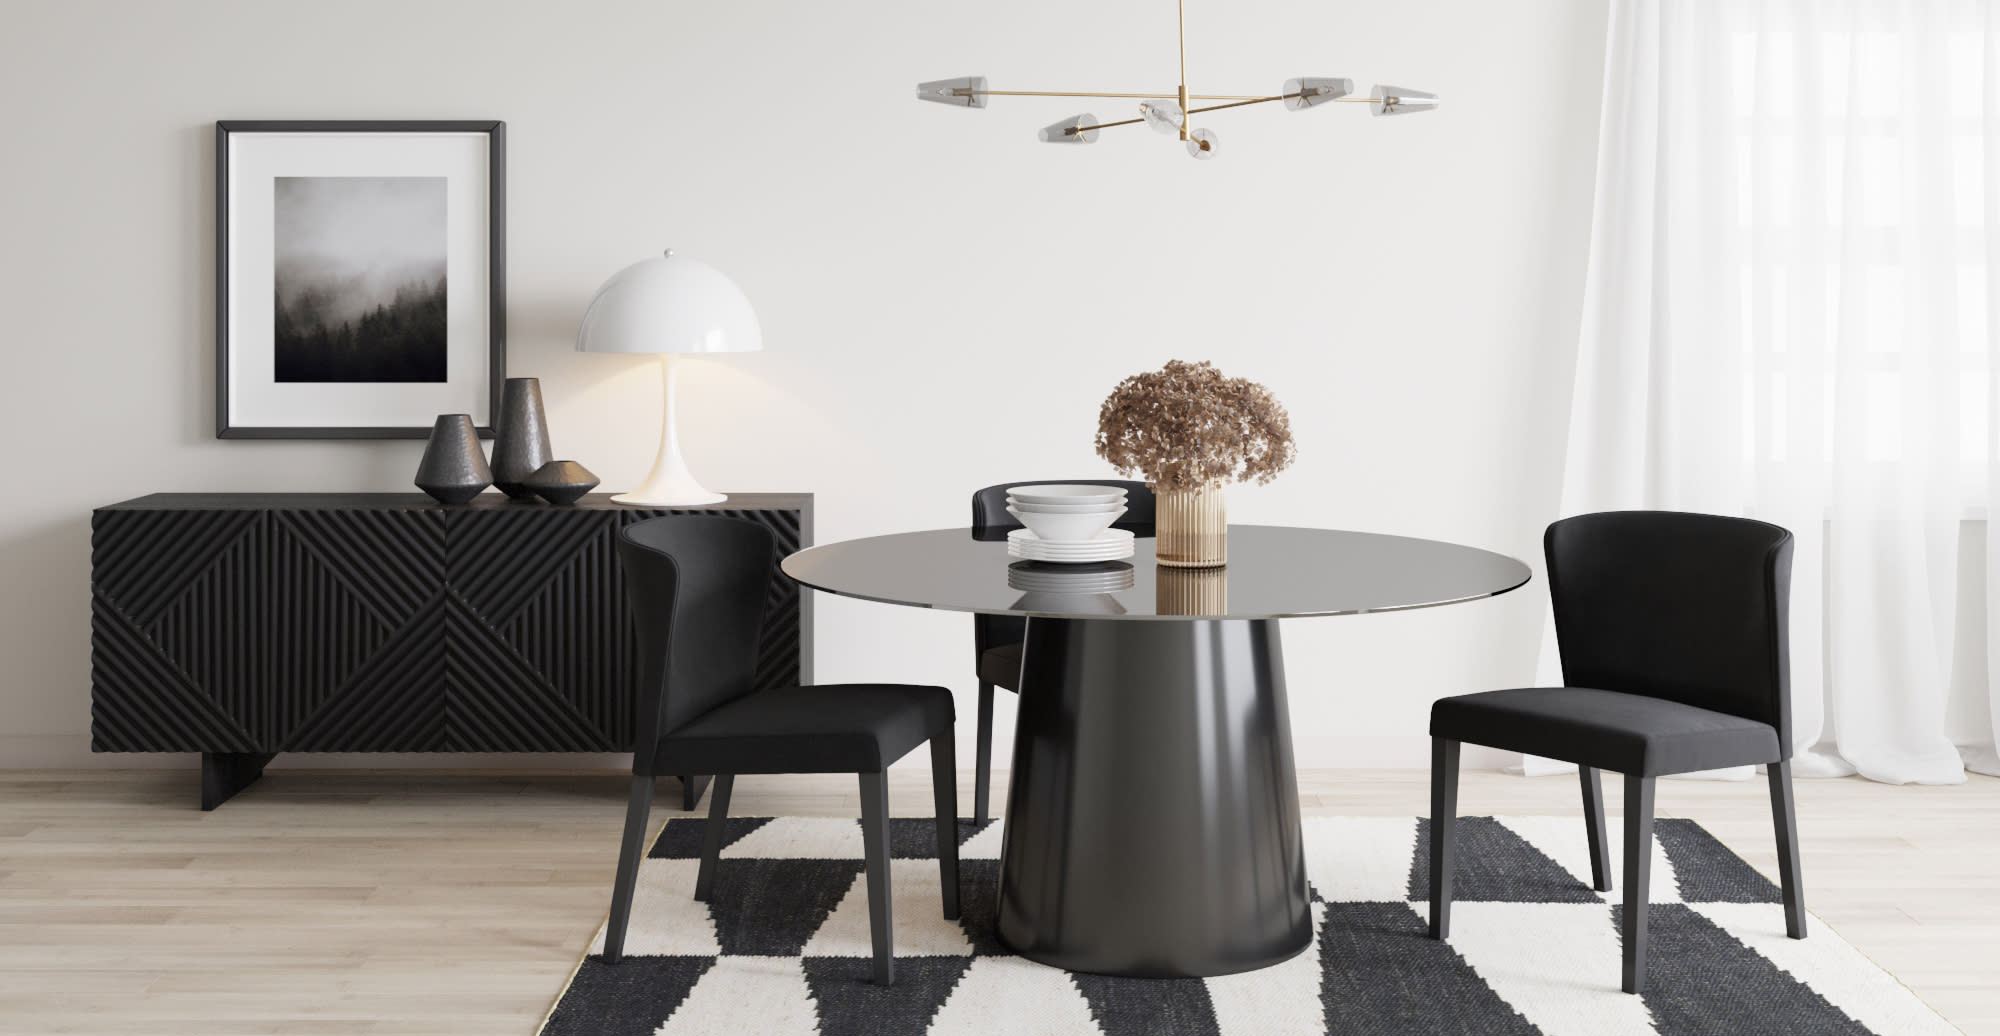 A round dining table in a designed space